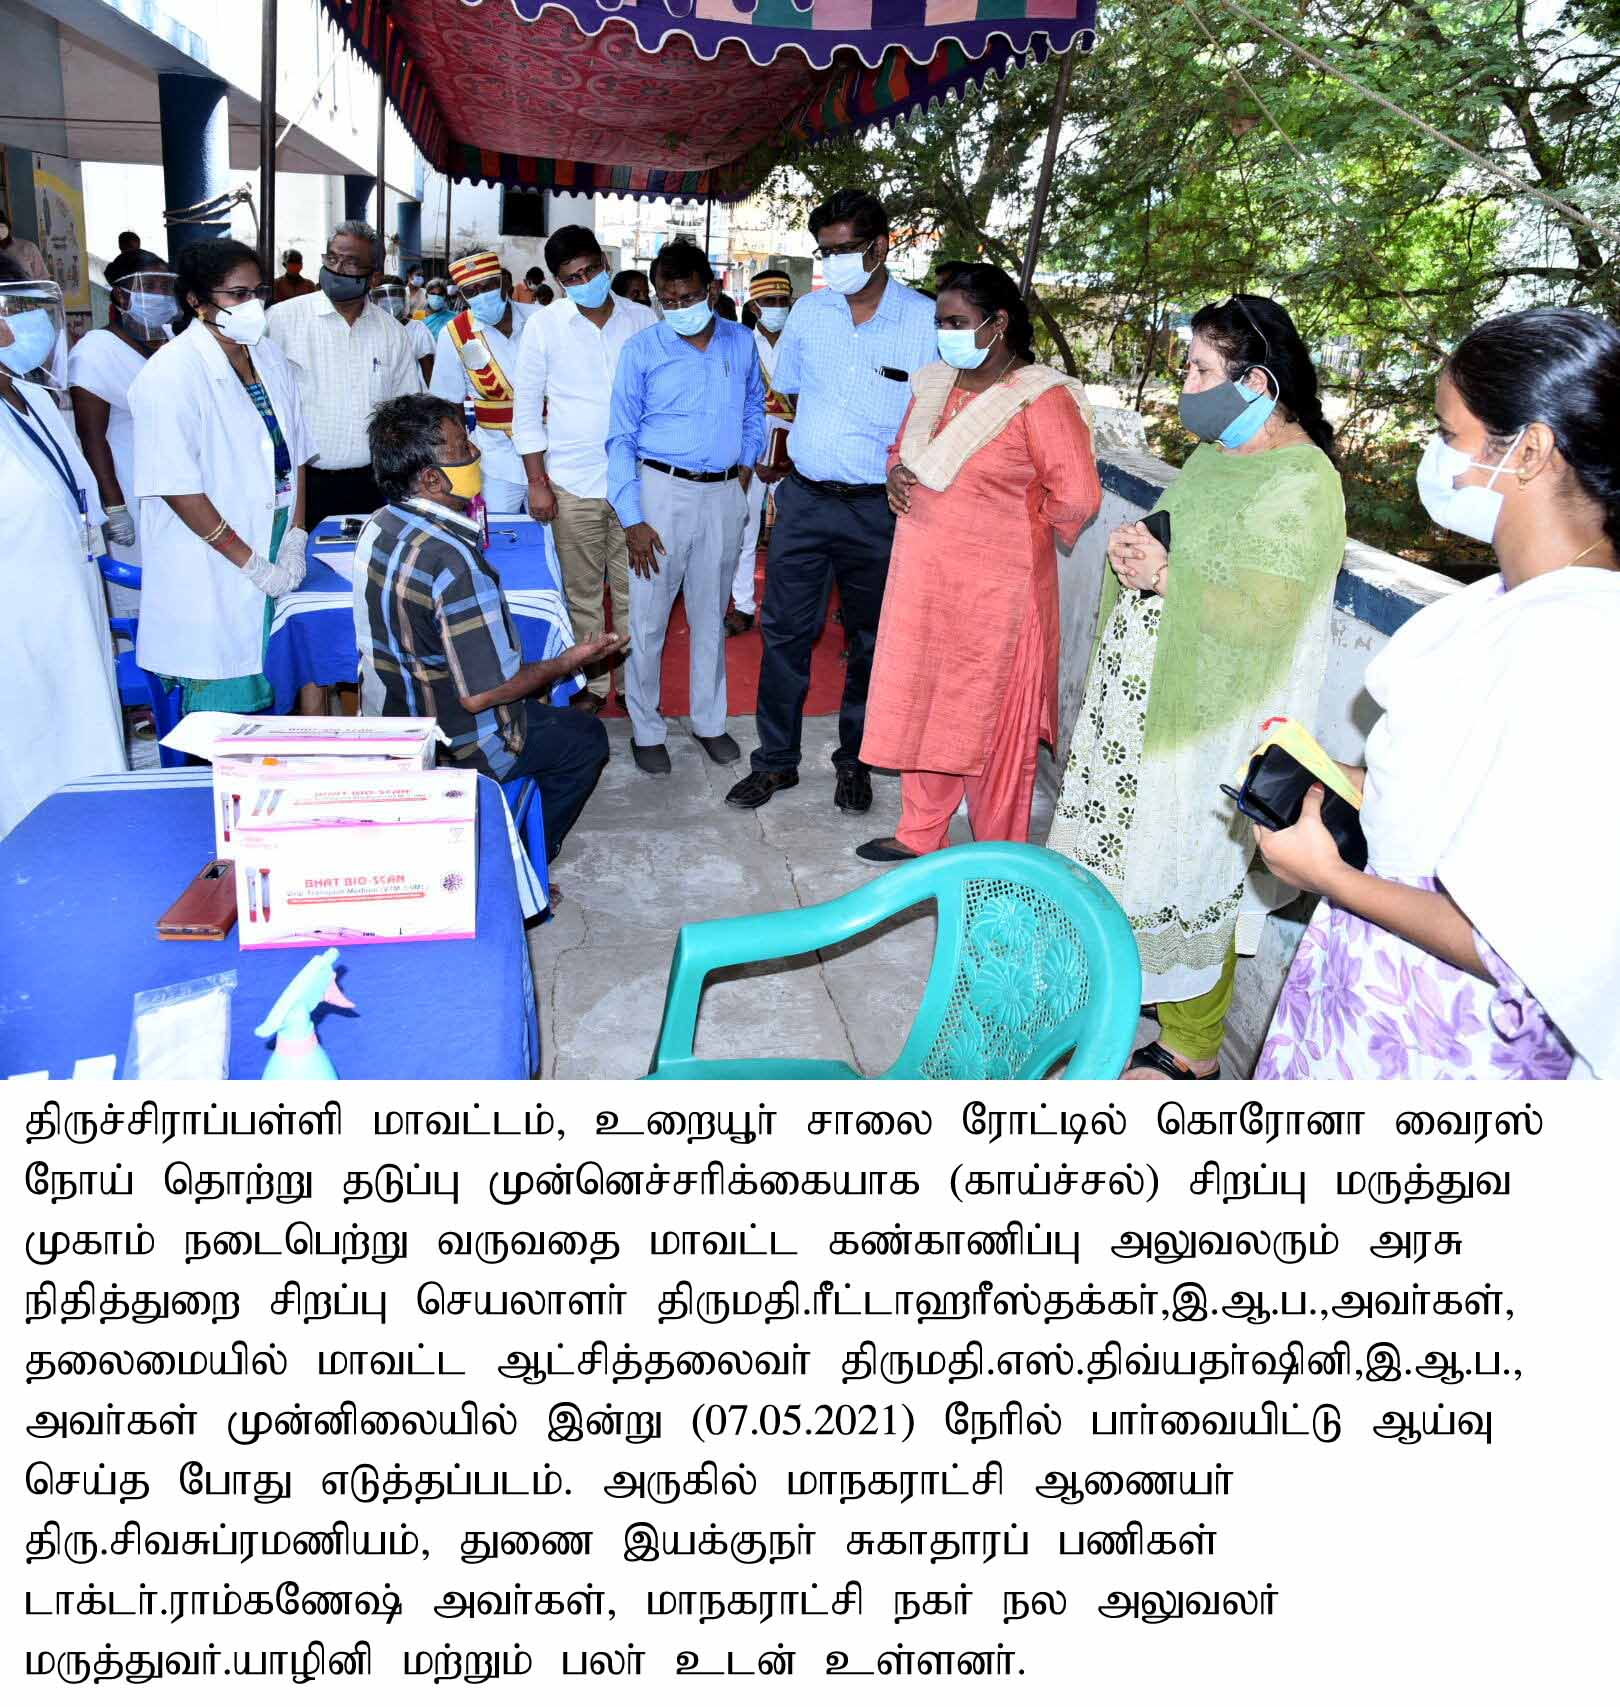 District Monitoring Officer Inspected the Spl. fever camps on 07.05.2021